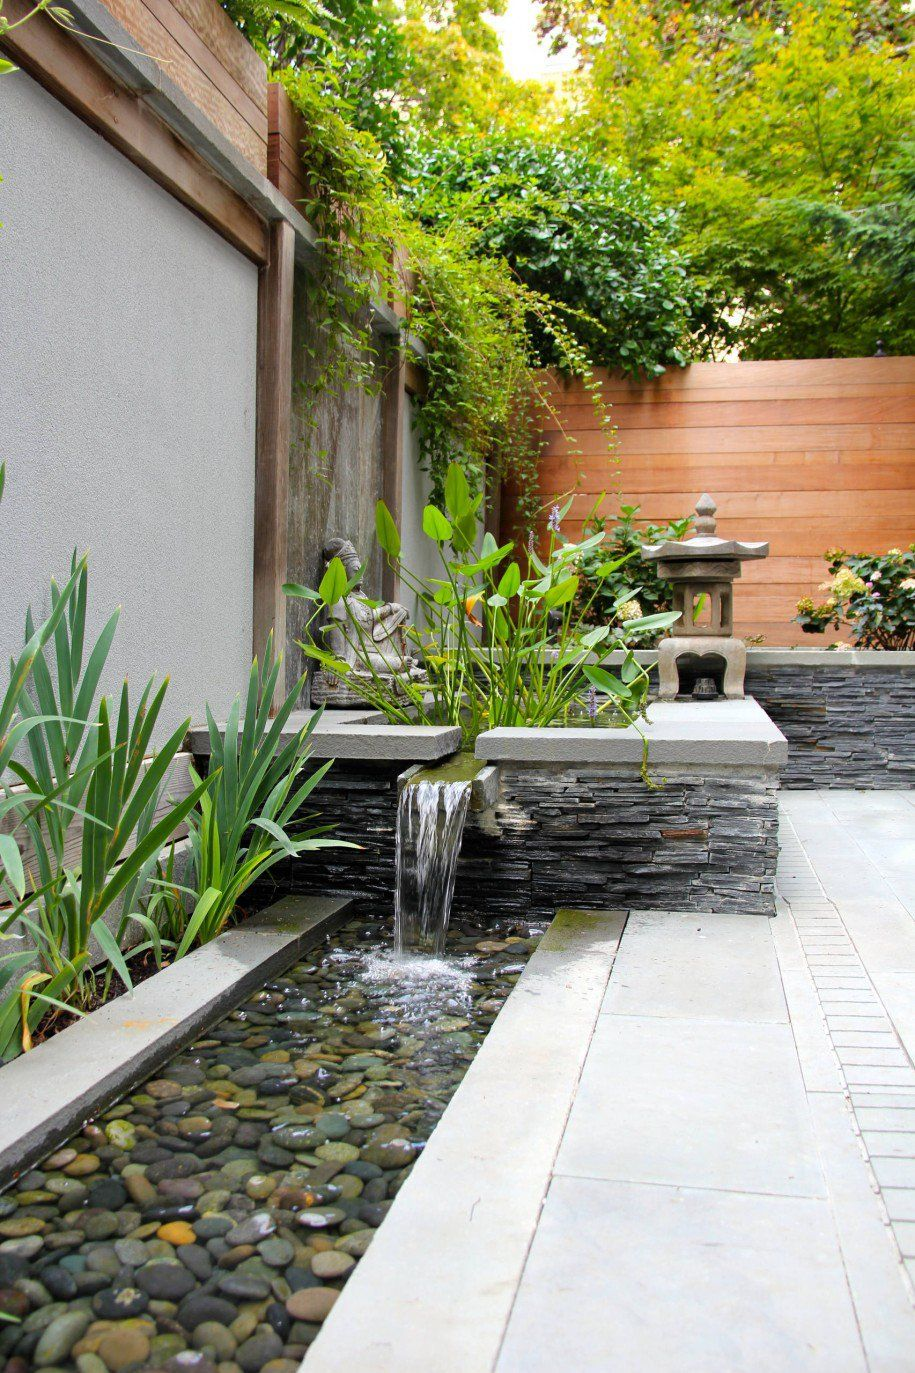 17 Asian Backyard Designs That You Need To See | Garden | Pinterest ...